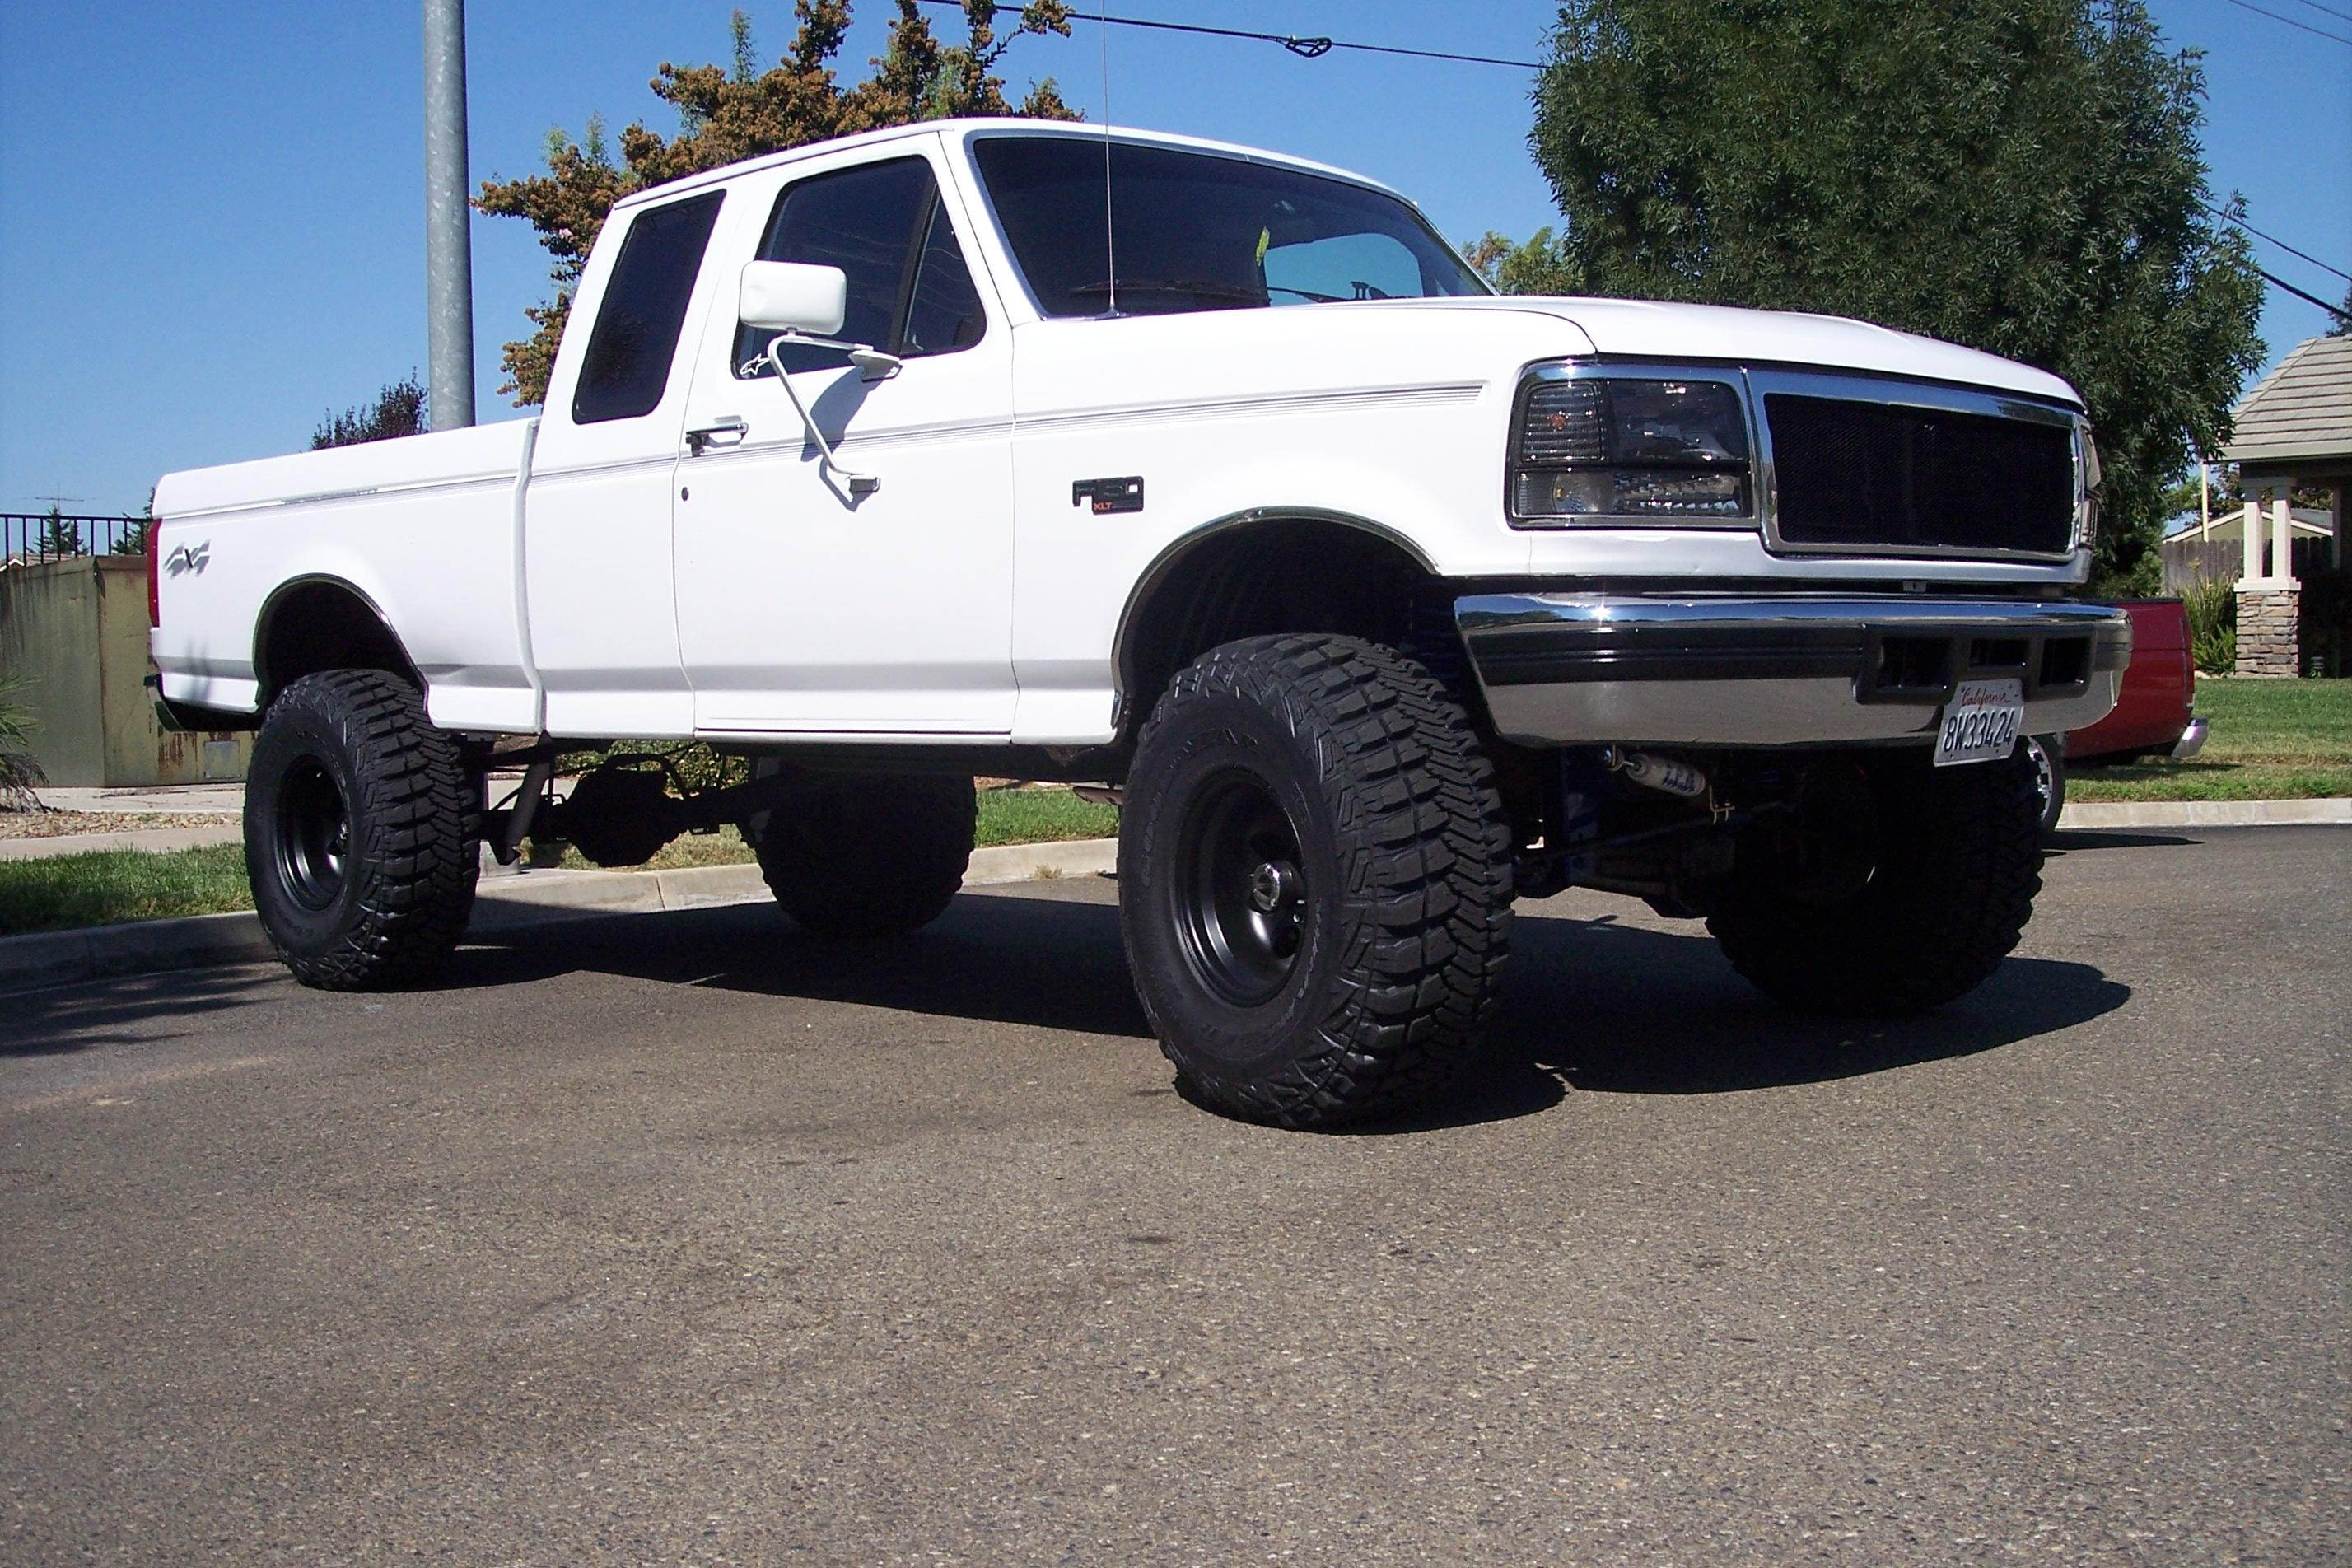 Twilliams9 1996 Ford F150 Regular Cabshort Bed Specs Photos